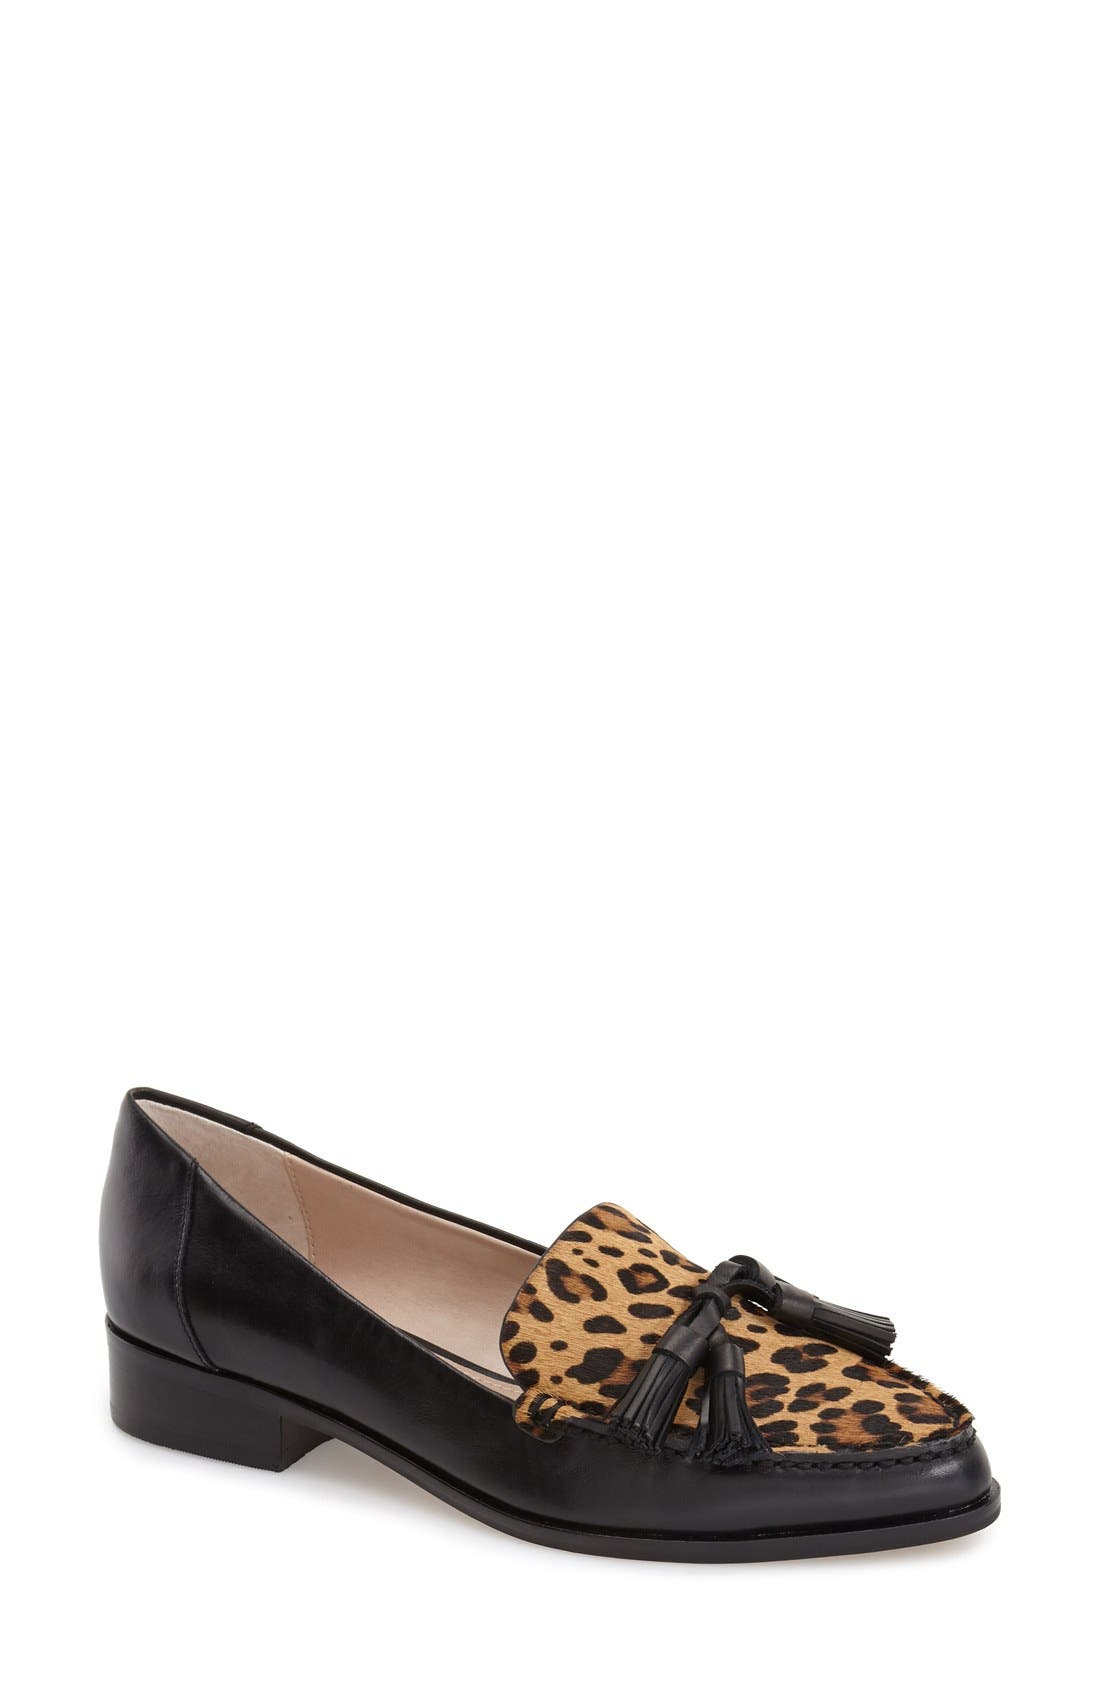 Main Image - French Connection 'Lonnie' Tassel Loafer (Women)